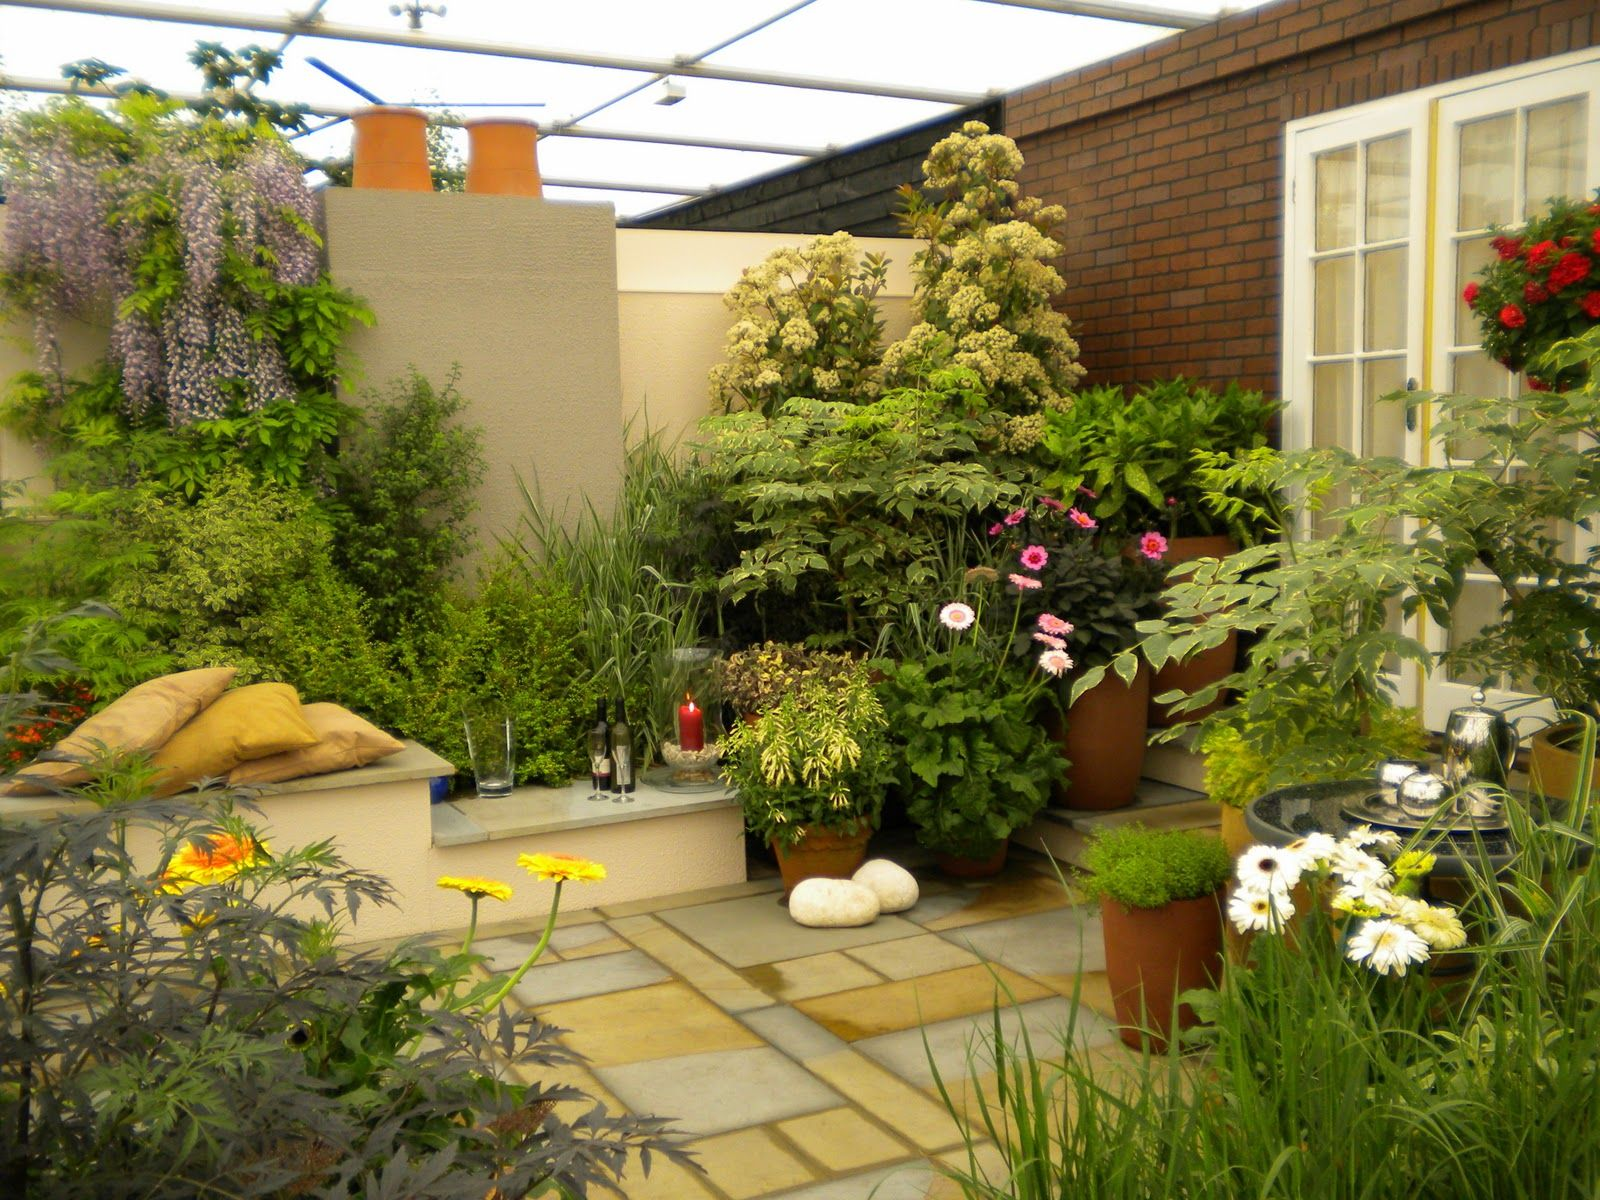 Decorating The Roof To Look Like A Paradise. Garden Design IdeasSmall ...